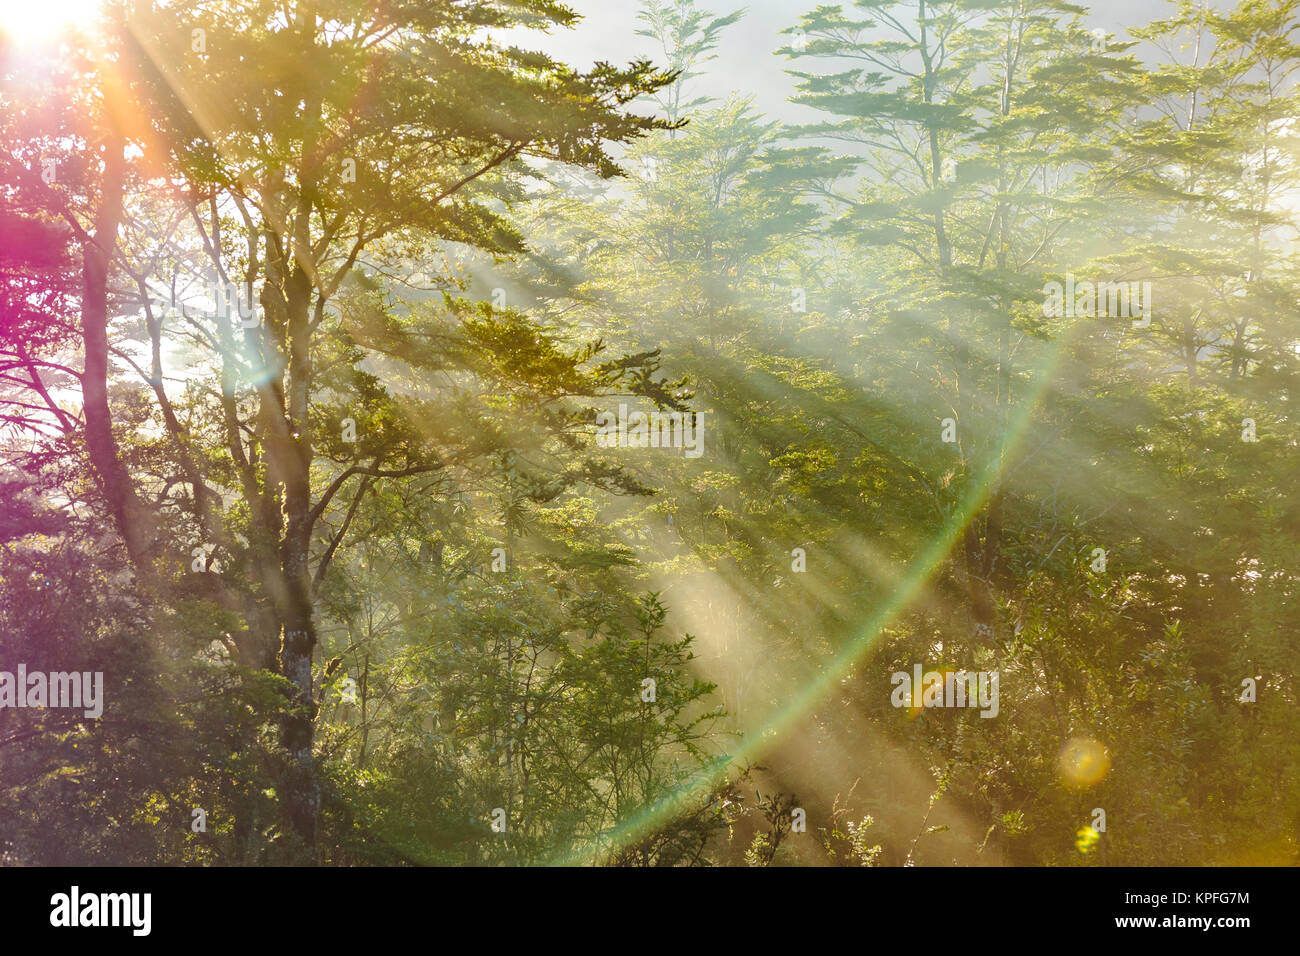 Forest scene at patagonia queulat national park, Aysen, Chile - Stock Image